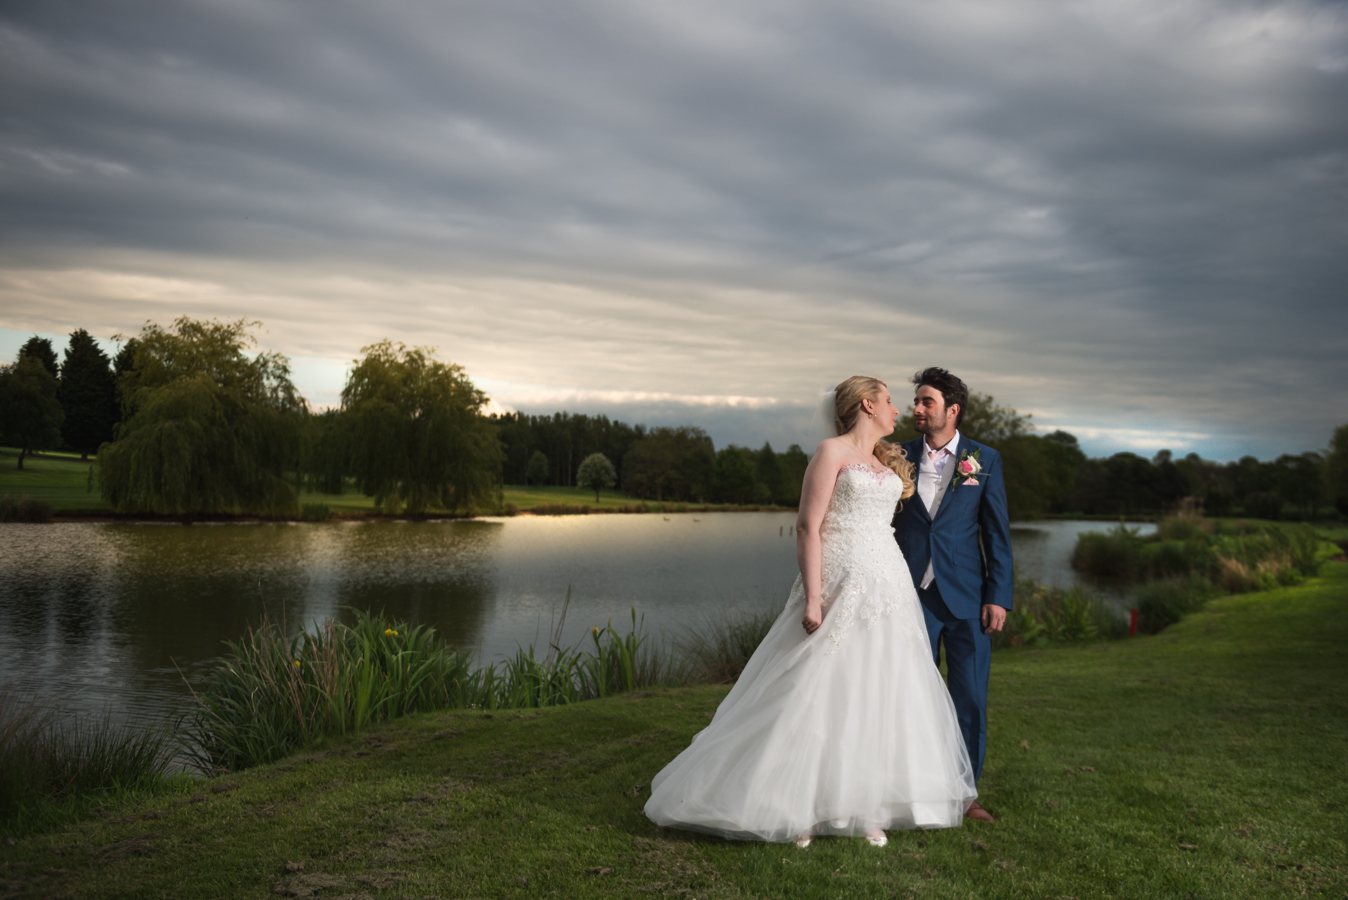 wedding epic photos west midlands